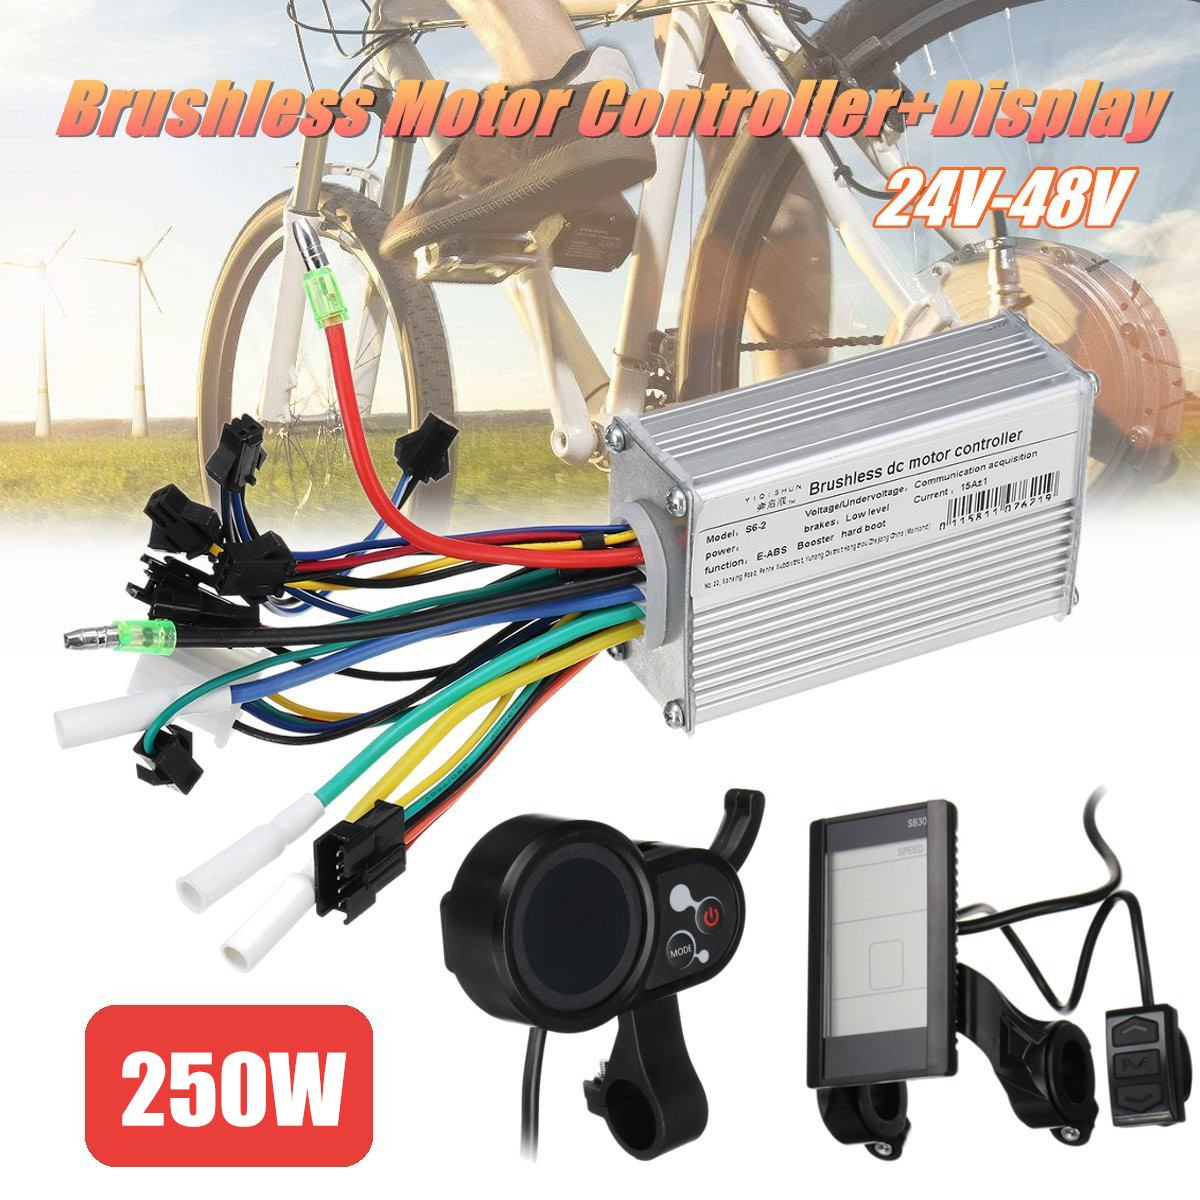 Brushless Motor Controller unit 250W 24V-48V LCD/Smart Display For Scooter E-Bike Electric Bicycle AccessoriesBrushless Motor Controller unit 250W 24V-48V LCD/Smart Display For Scooter E-Bike Electric Bicycle Accessories